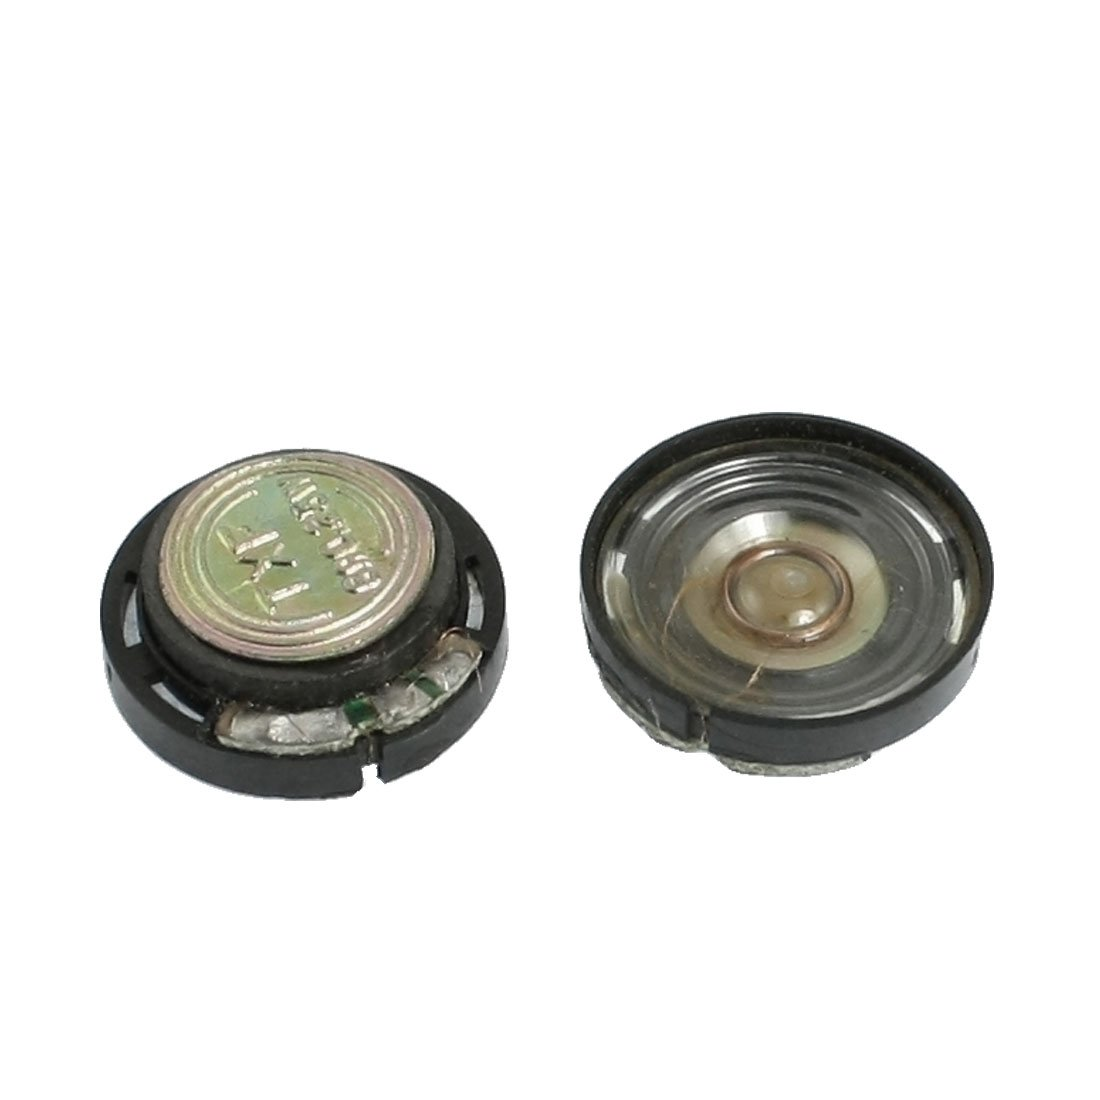 CES-20mm 2 pcs Magnetic Type Round Plastic Shell Speaker 8 Ohm 0.25W